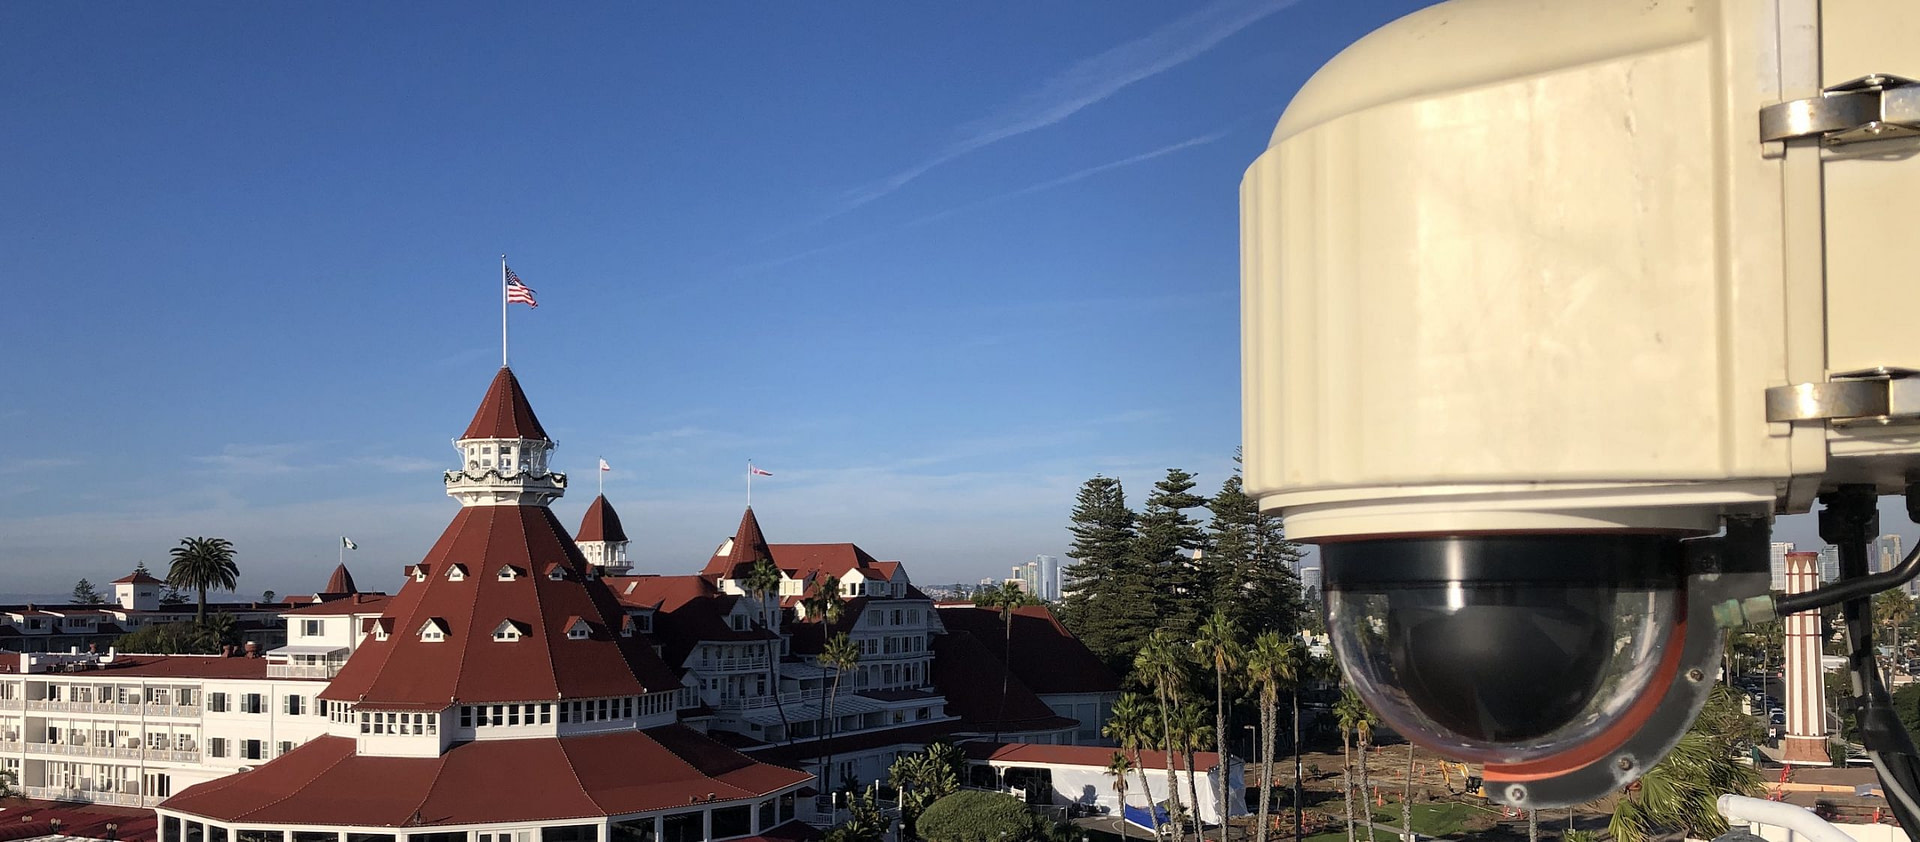 XClear Self Cleaning Camera Enclosure System Installed on the Hotel Del in Coronado